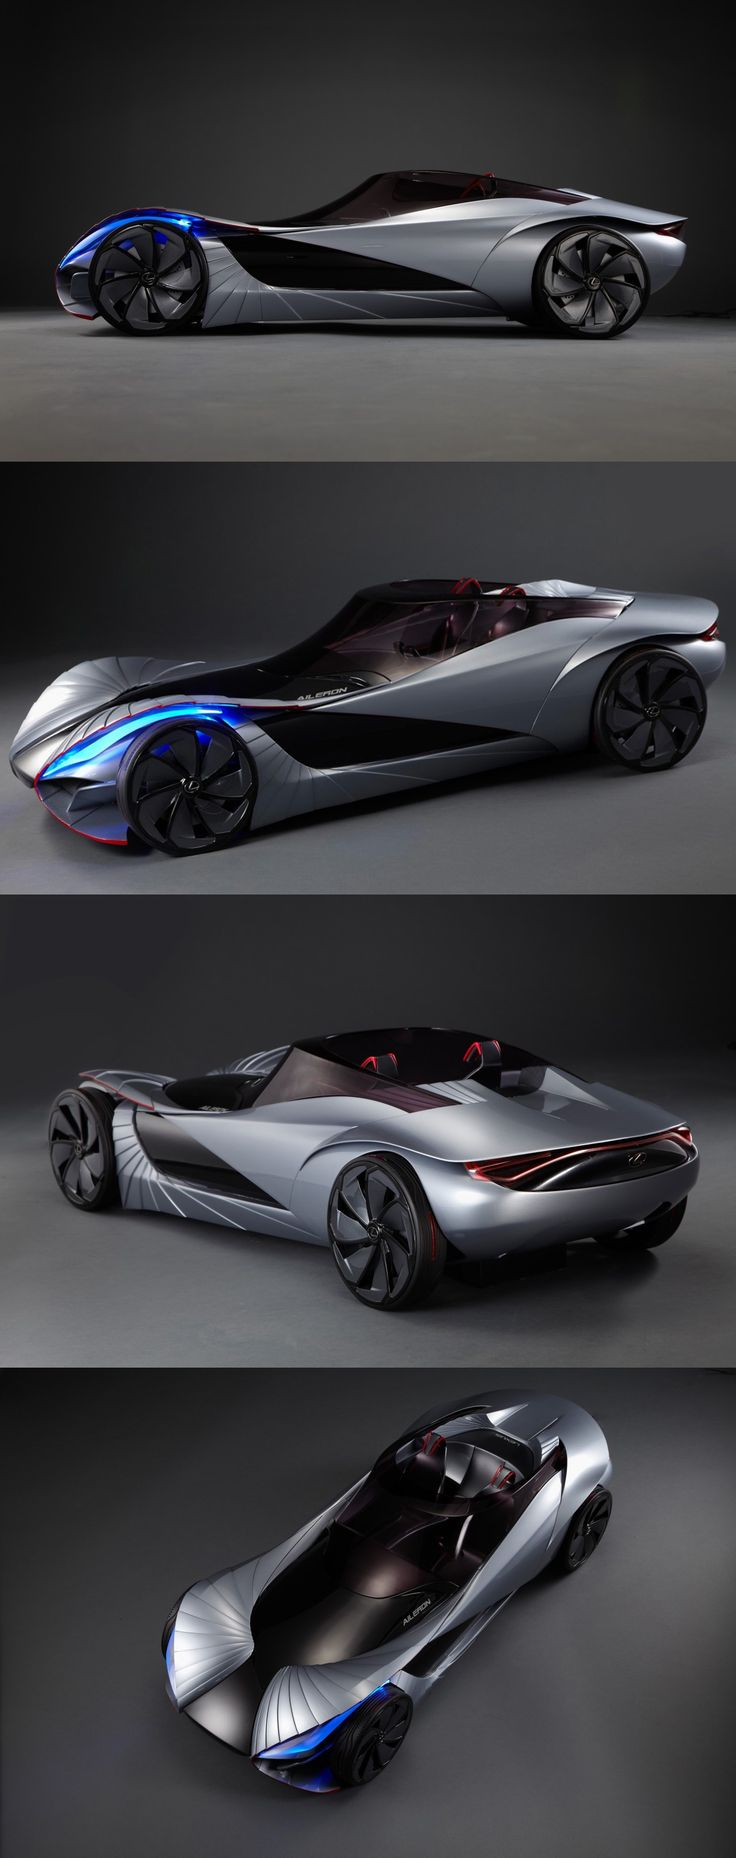 The Lexus Aileron is an unusual and radical concept car  ❤ www.healthylivingmd.vemma.com ❤